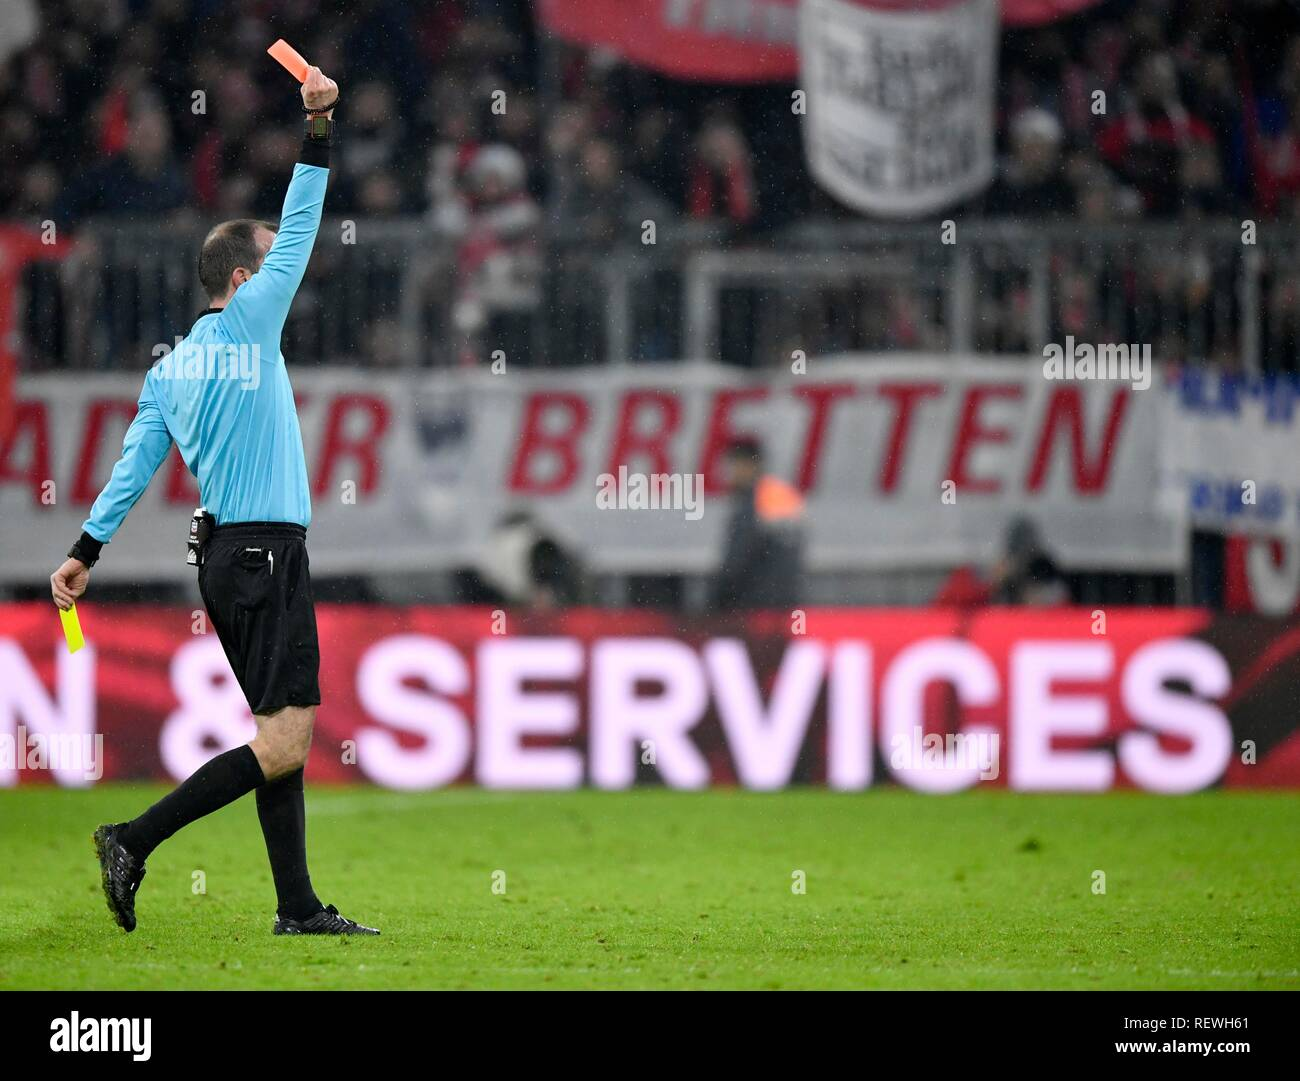 Referee Marco Fritz shows yellow-red card, Allianz Arena, Munich, Bavaria, Germany - Stock Image